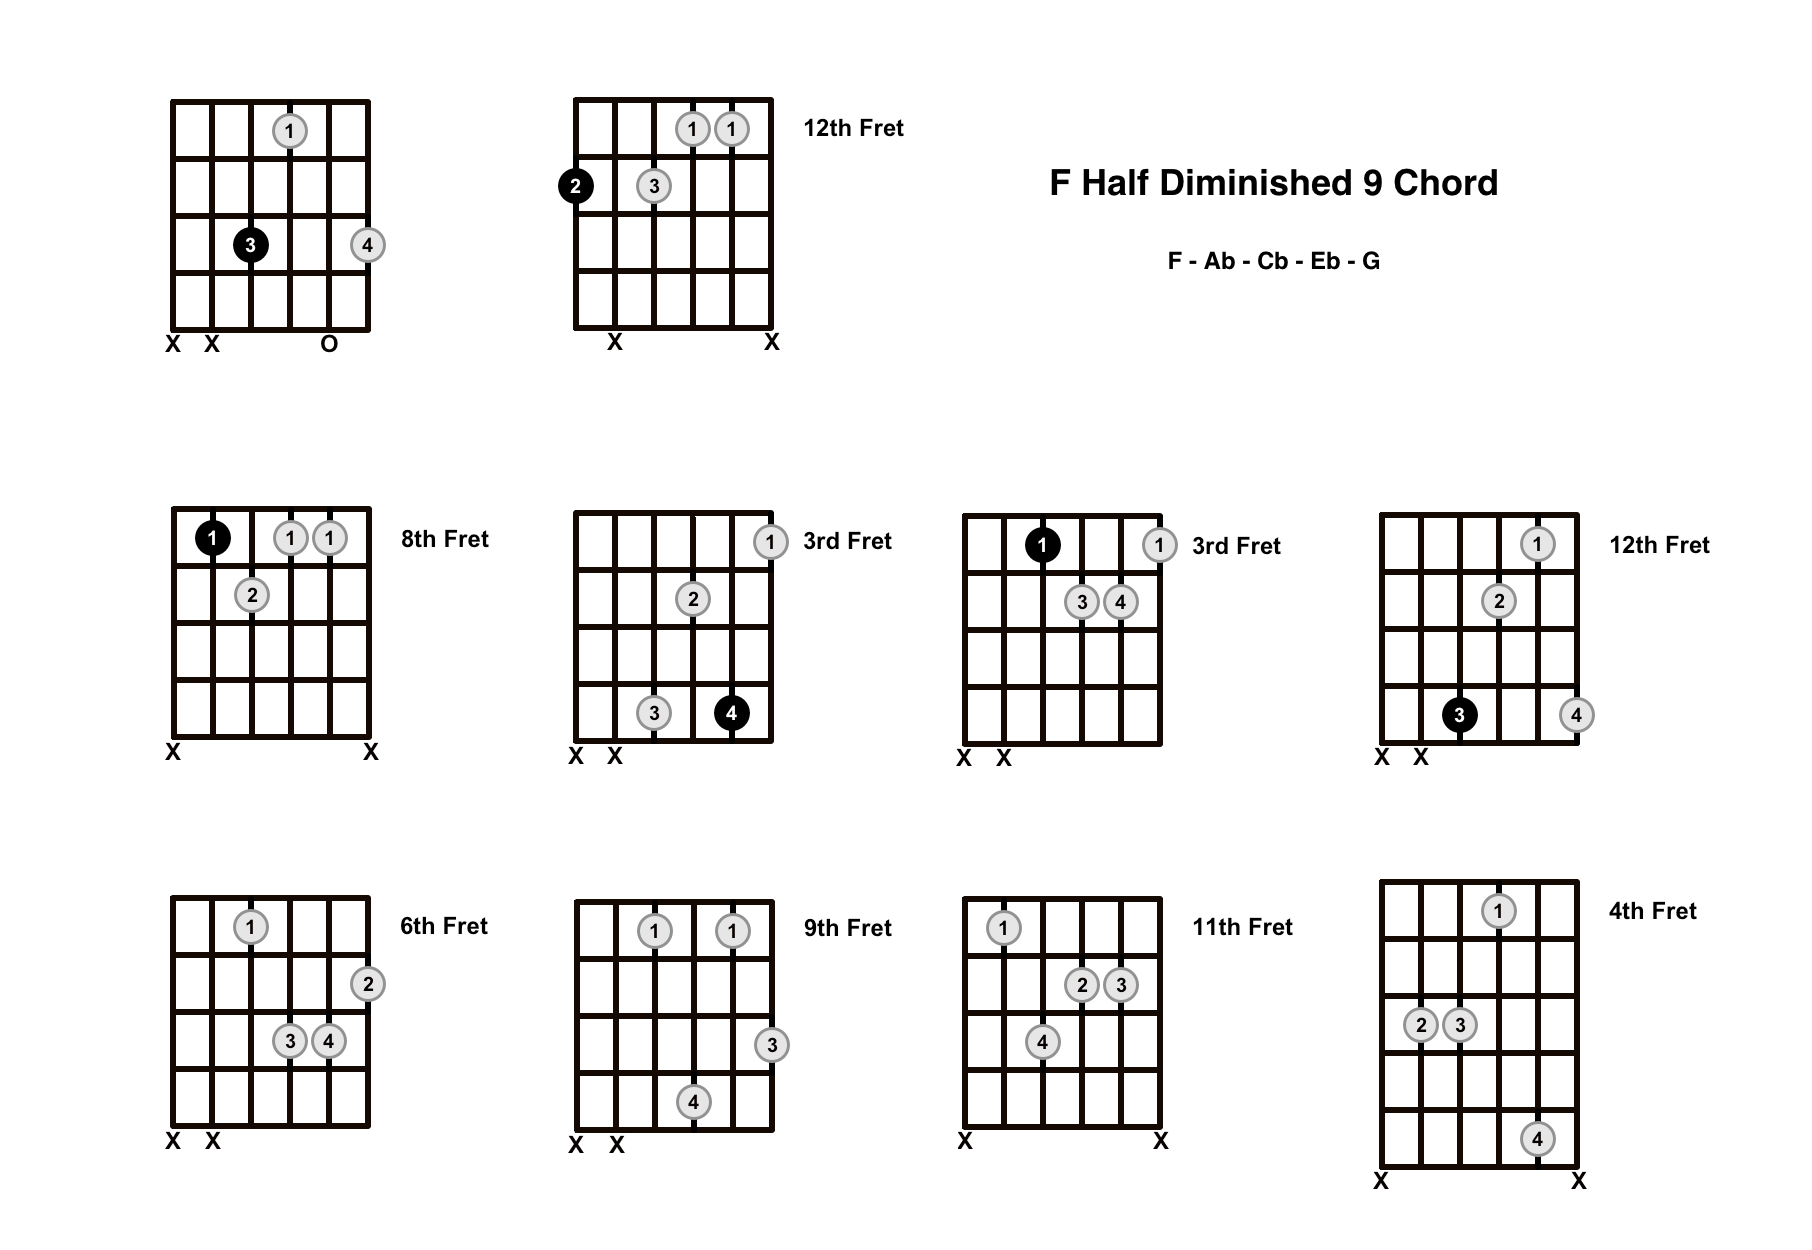 Fm9b5 Chord On The Guitar (F Half Diminished 9) – Diagrams, Finger Positions and Theory